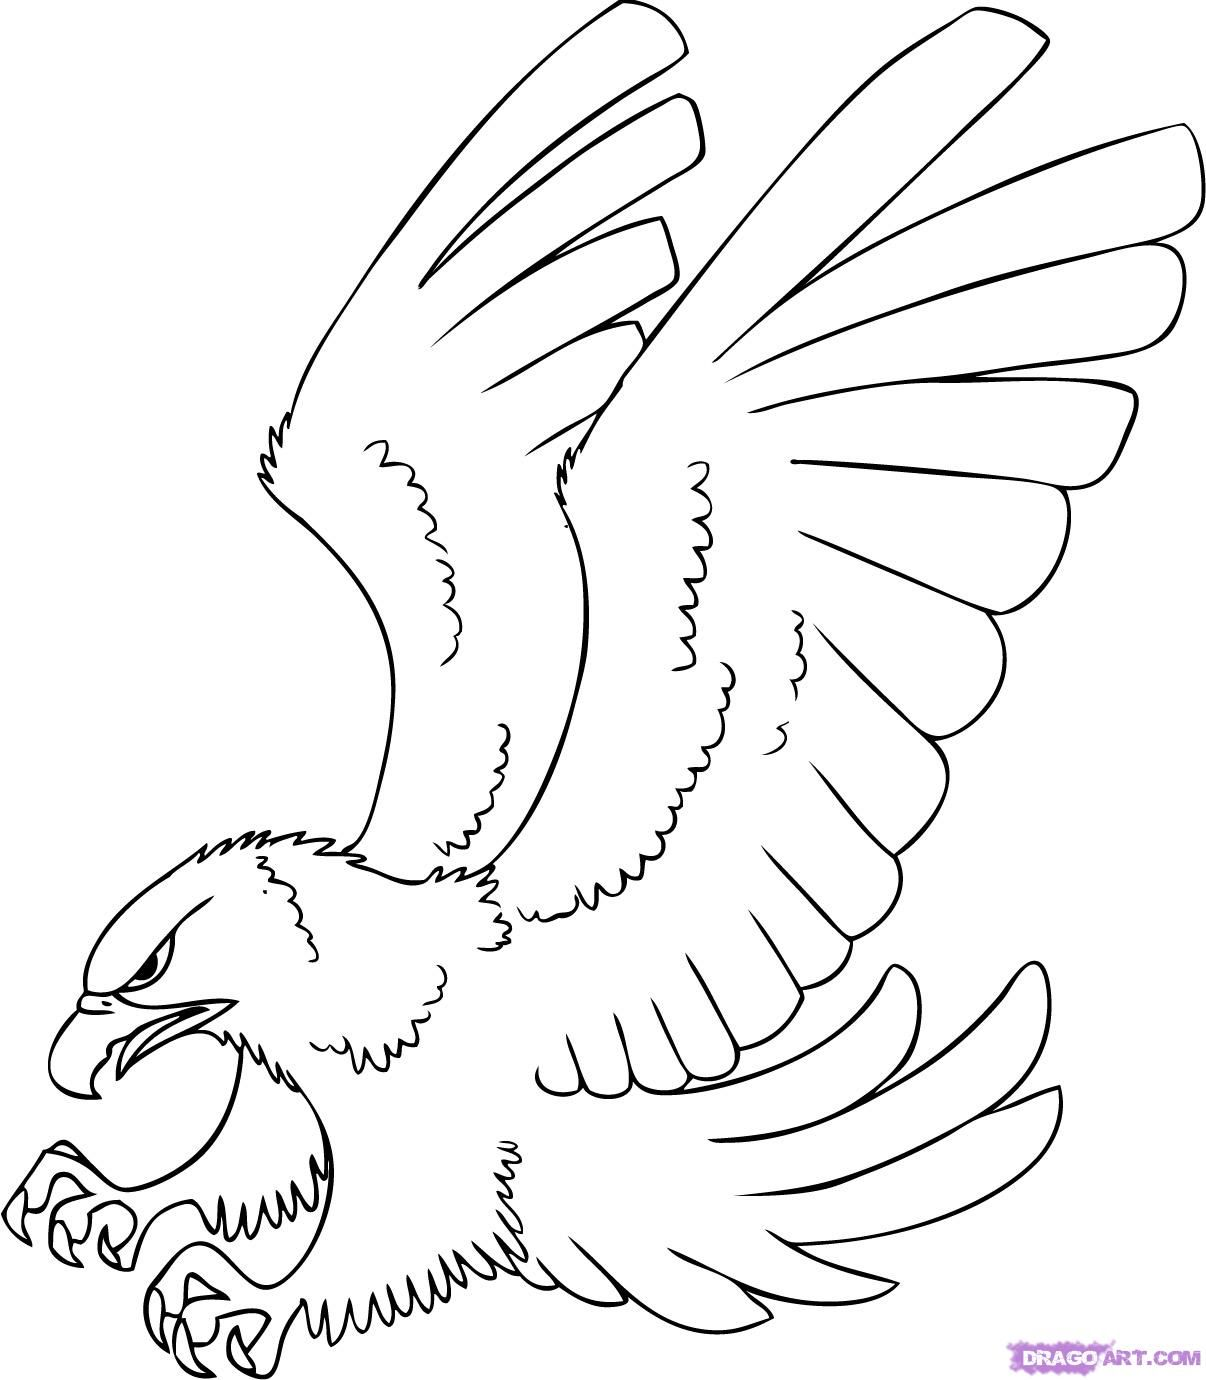 free hawk images to draw a cartoon hawk step by step cartoon animals